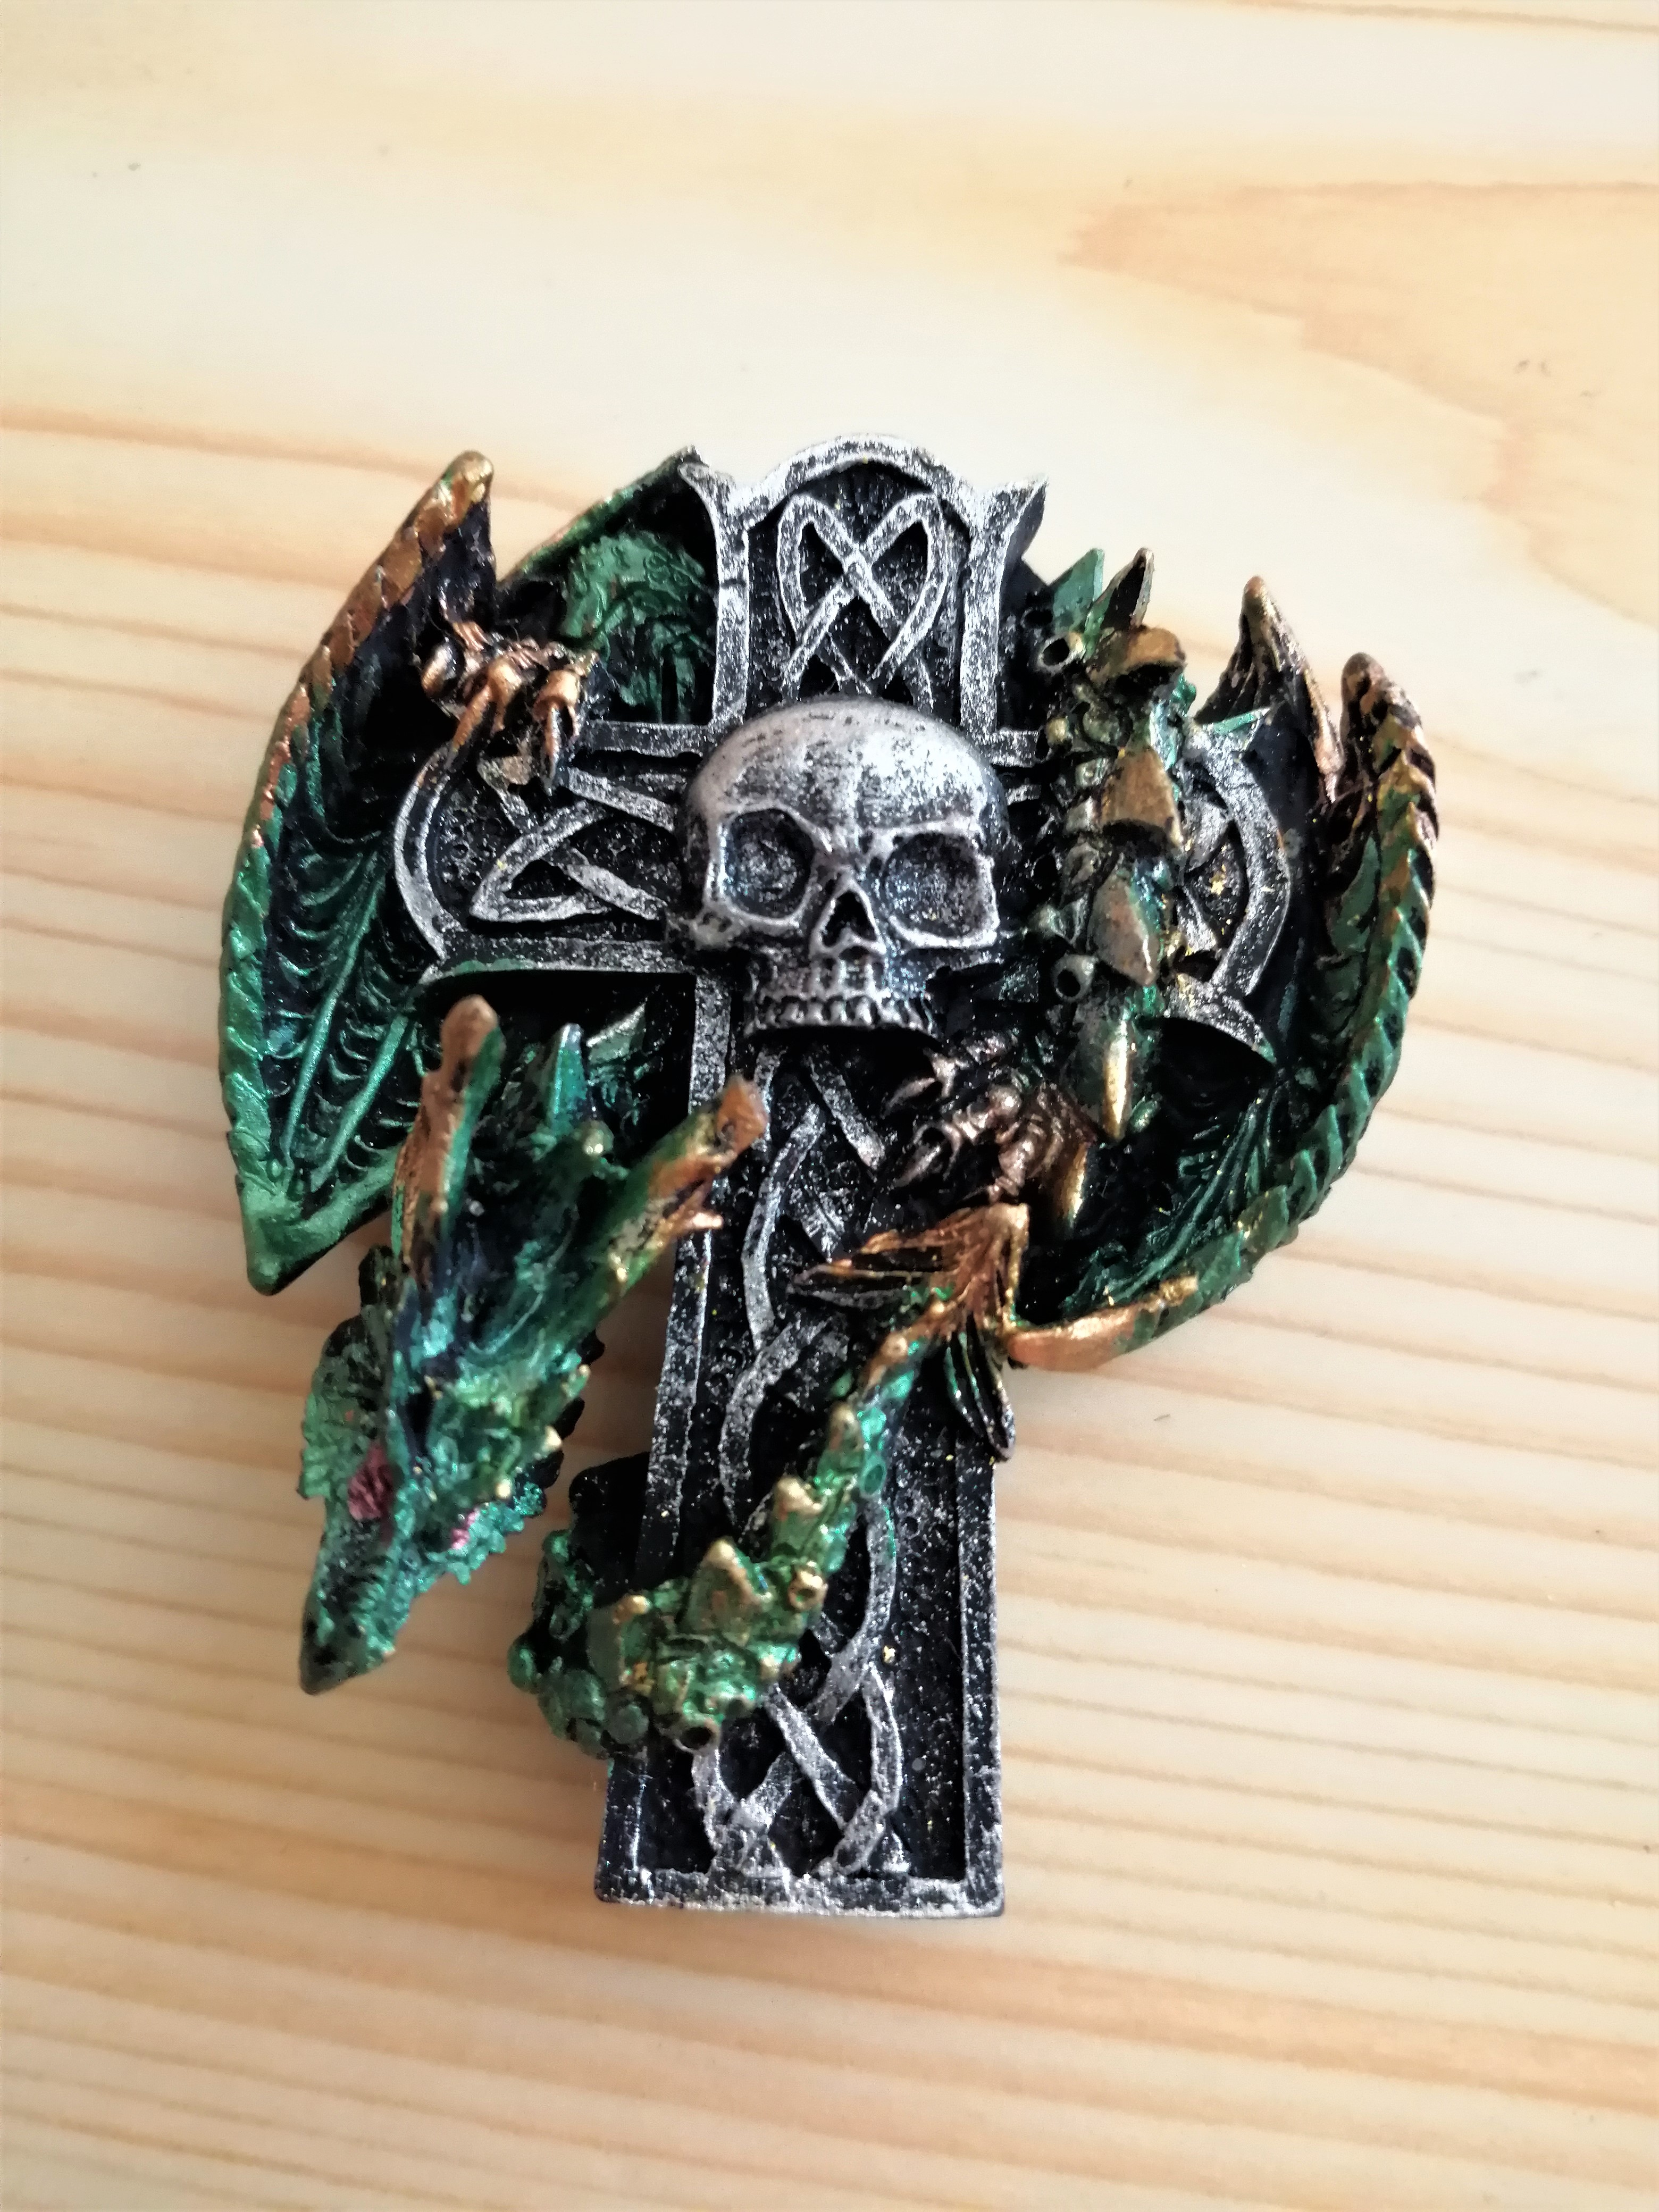 Green Dragon on Cross Fridge Magnet